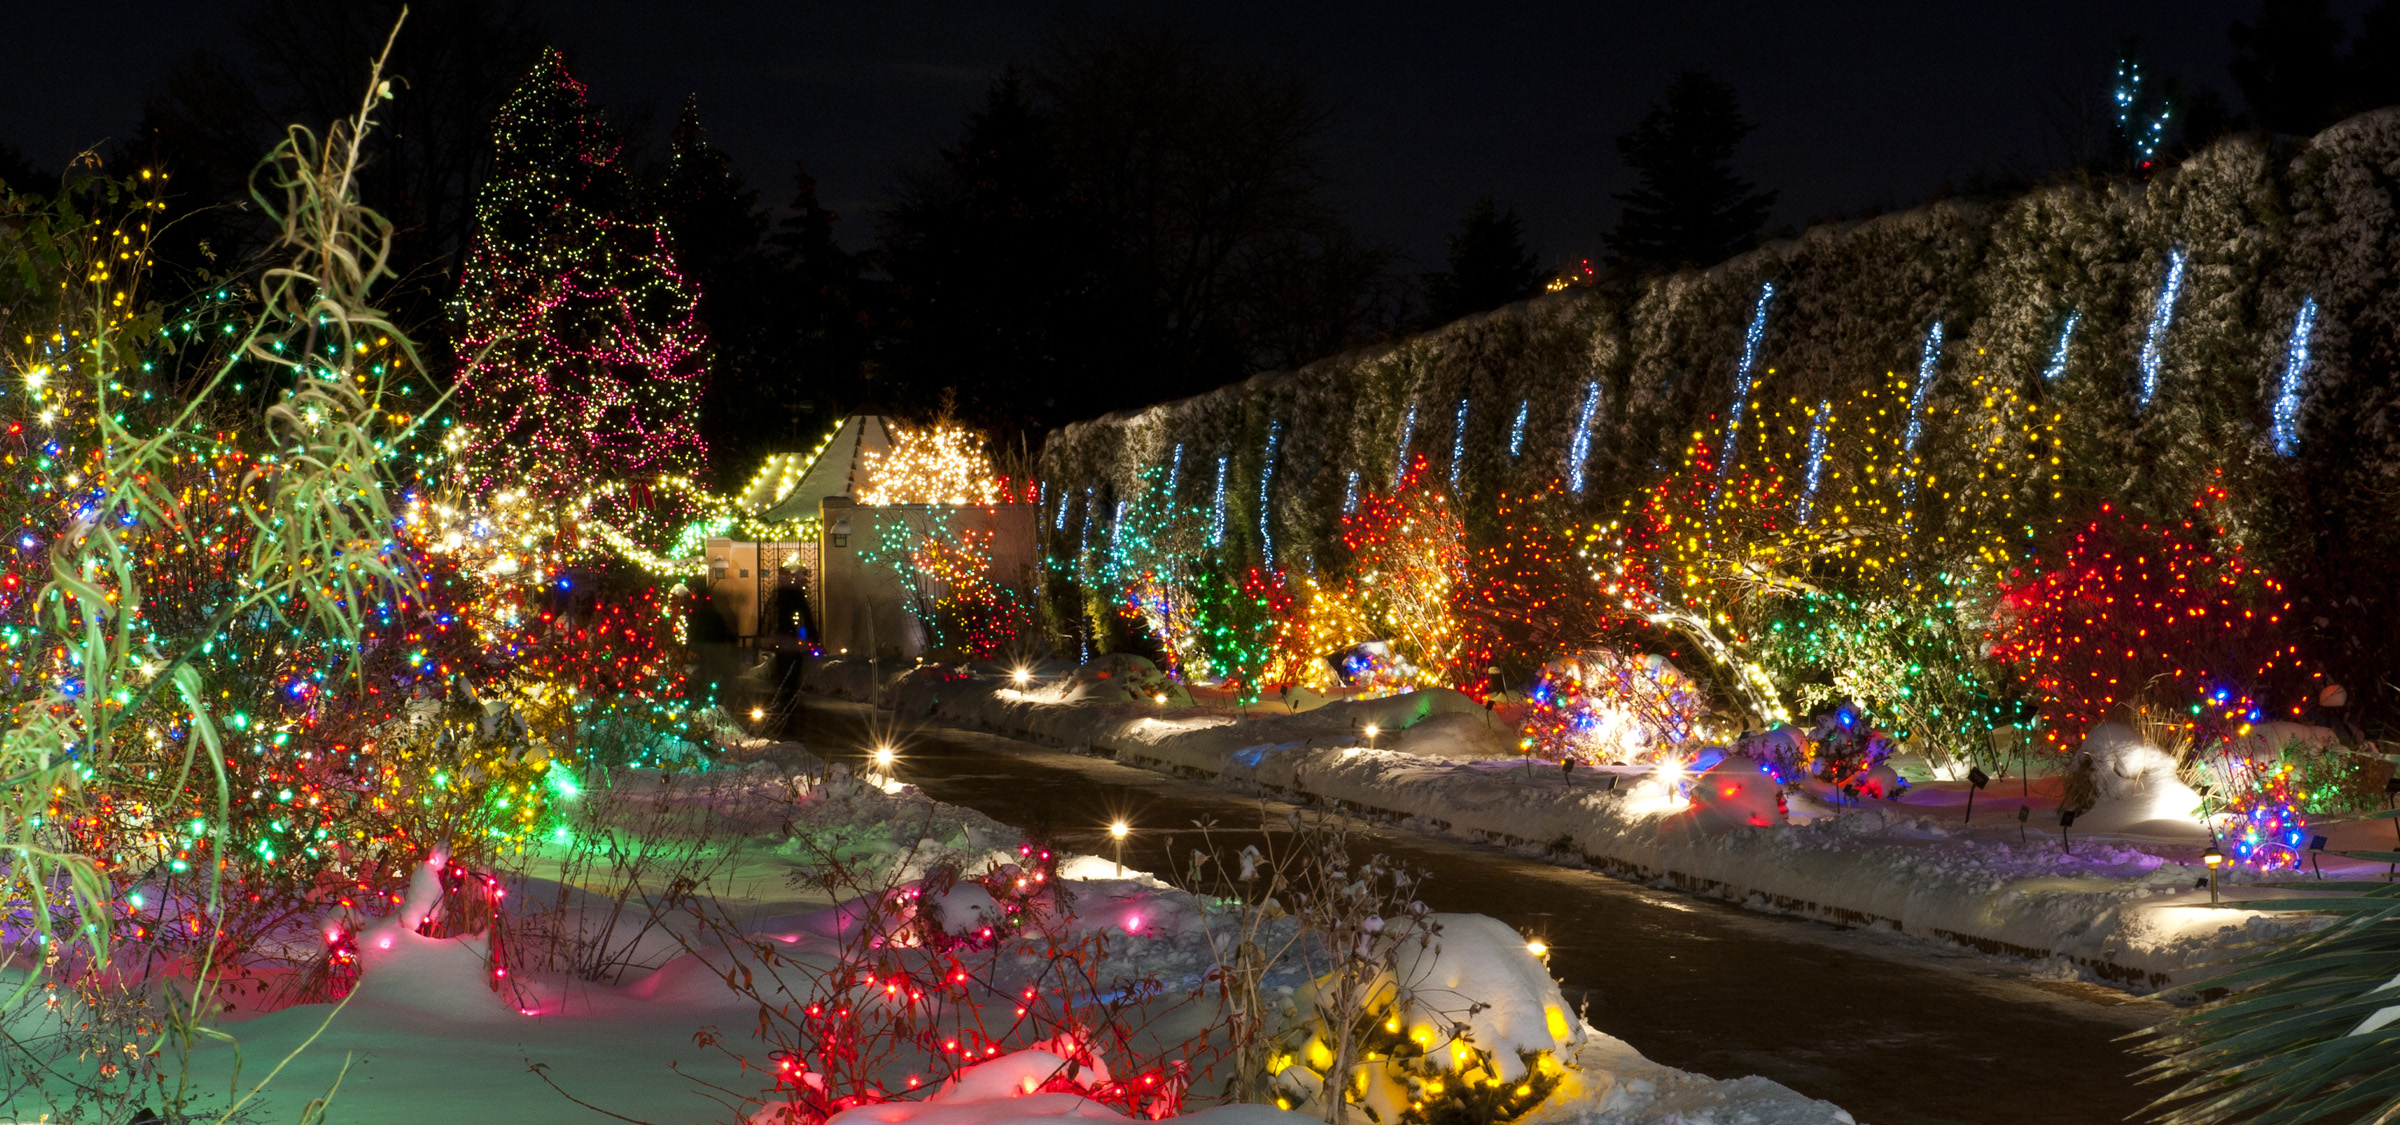 Swingle Shares Best Places To View Christmas Lights In